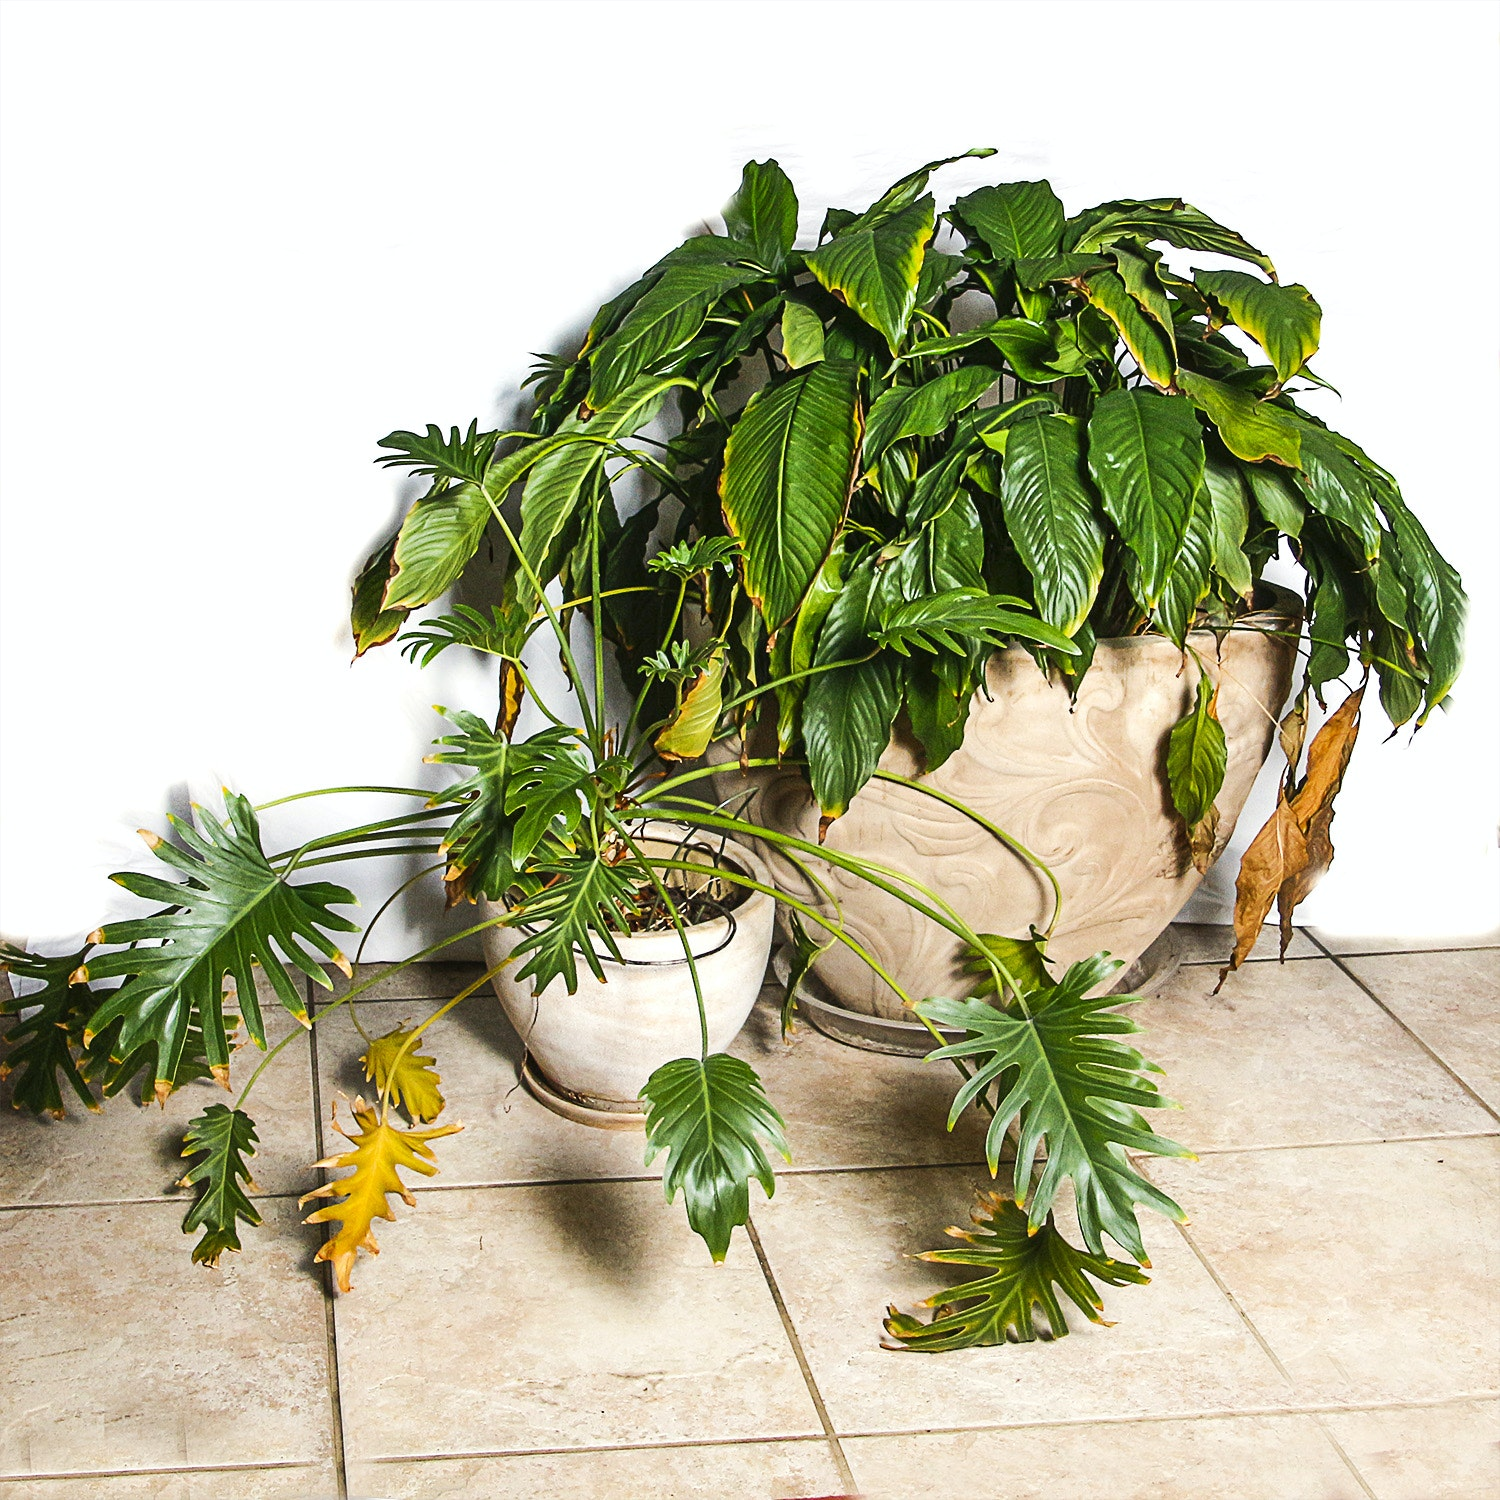 Tropical House Plants in Ceramic Pots